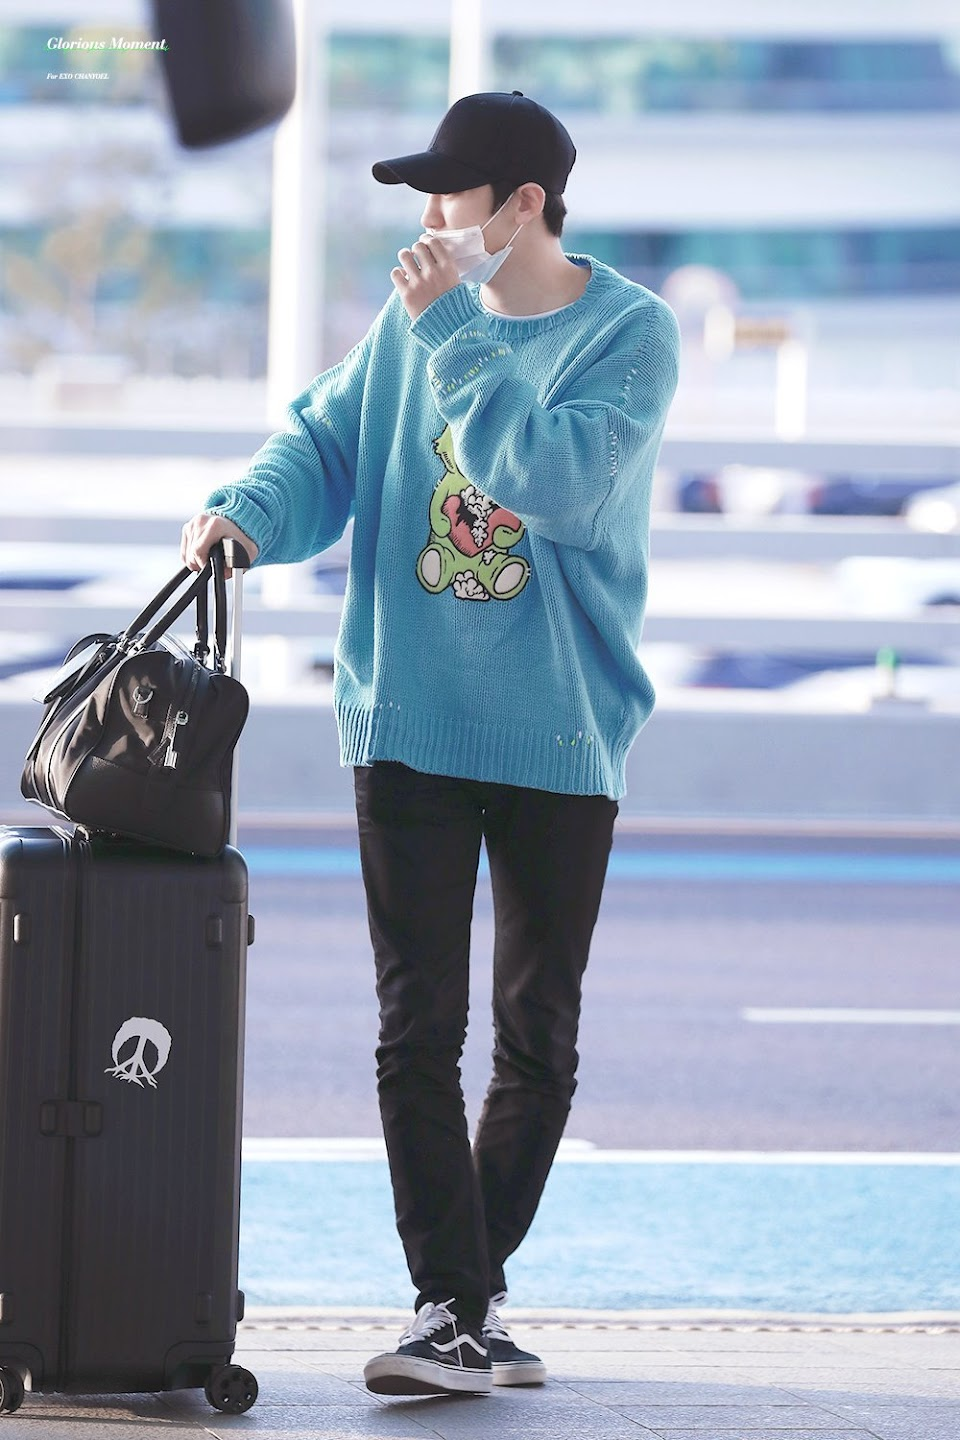 chanyeolairport_7a